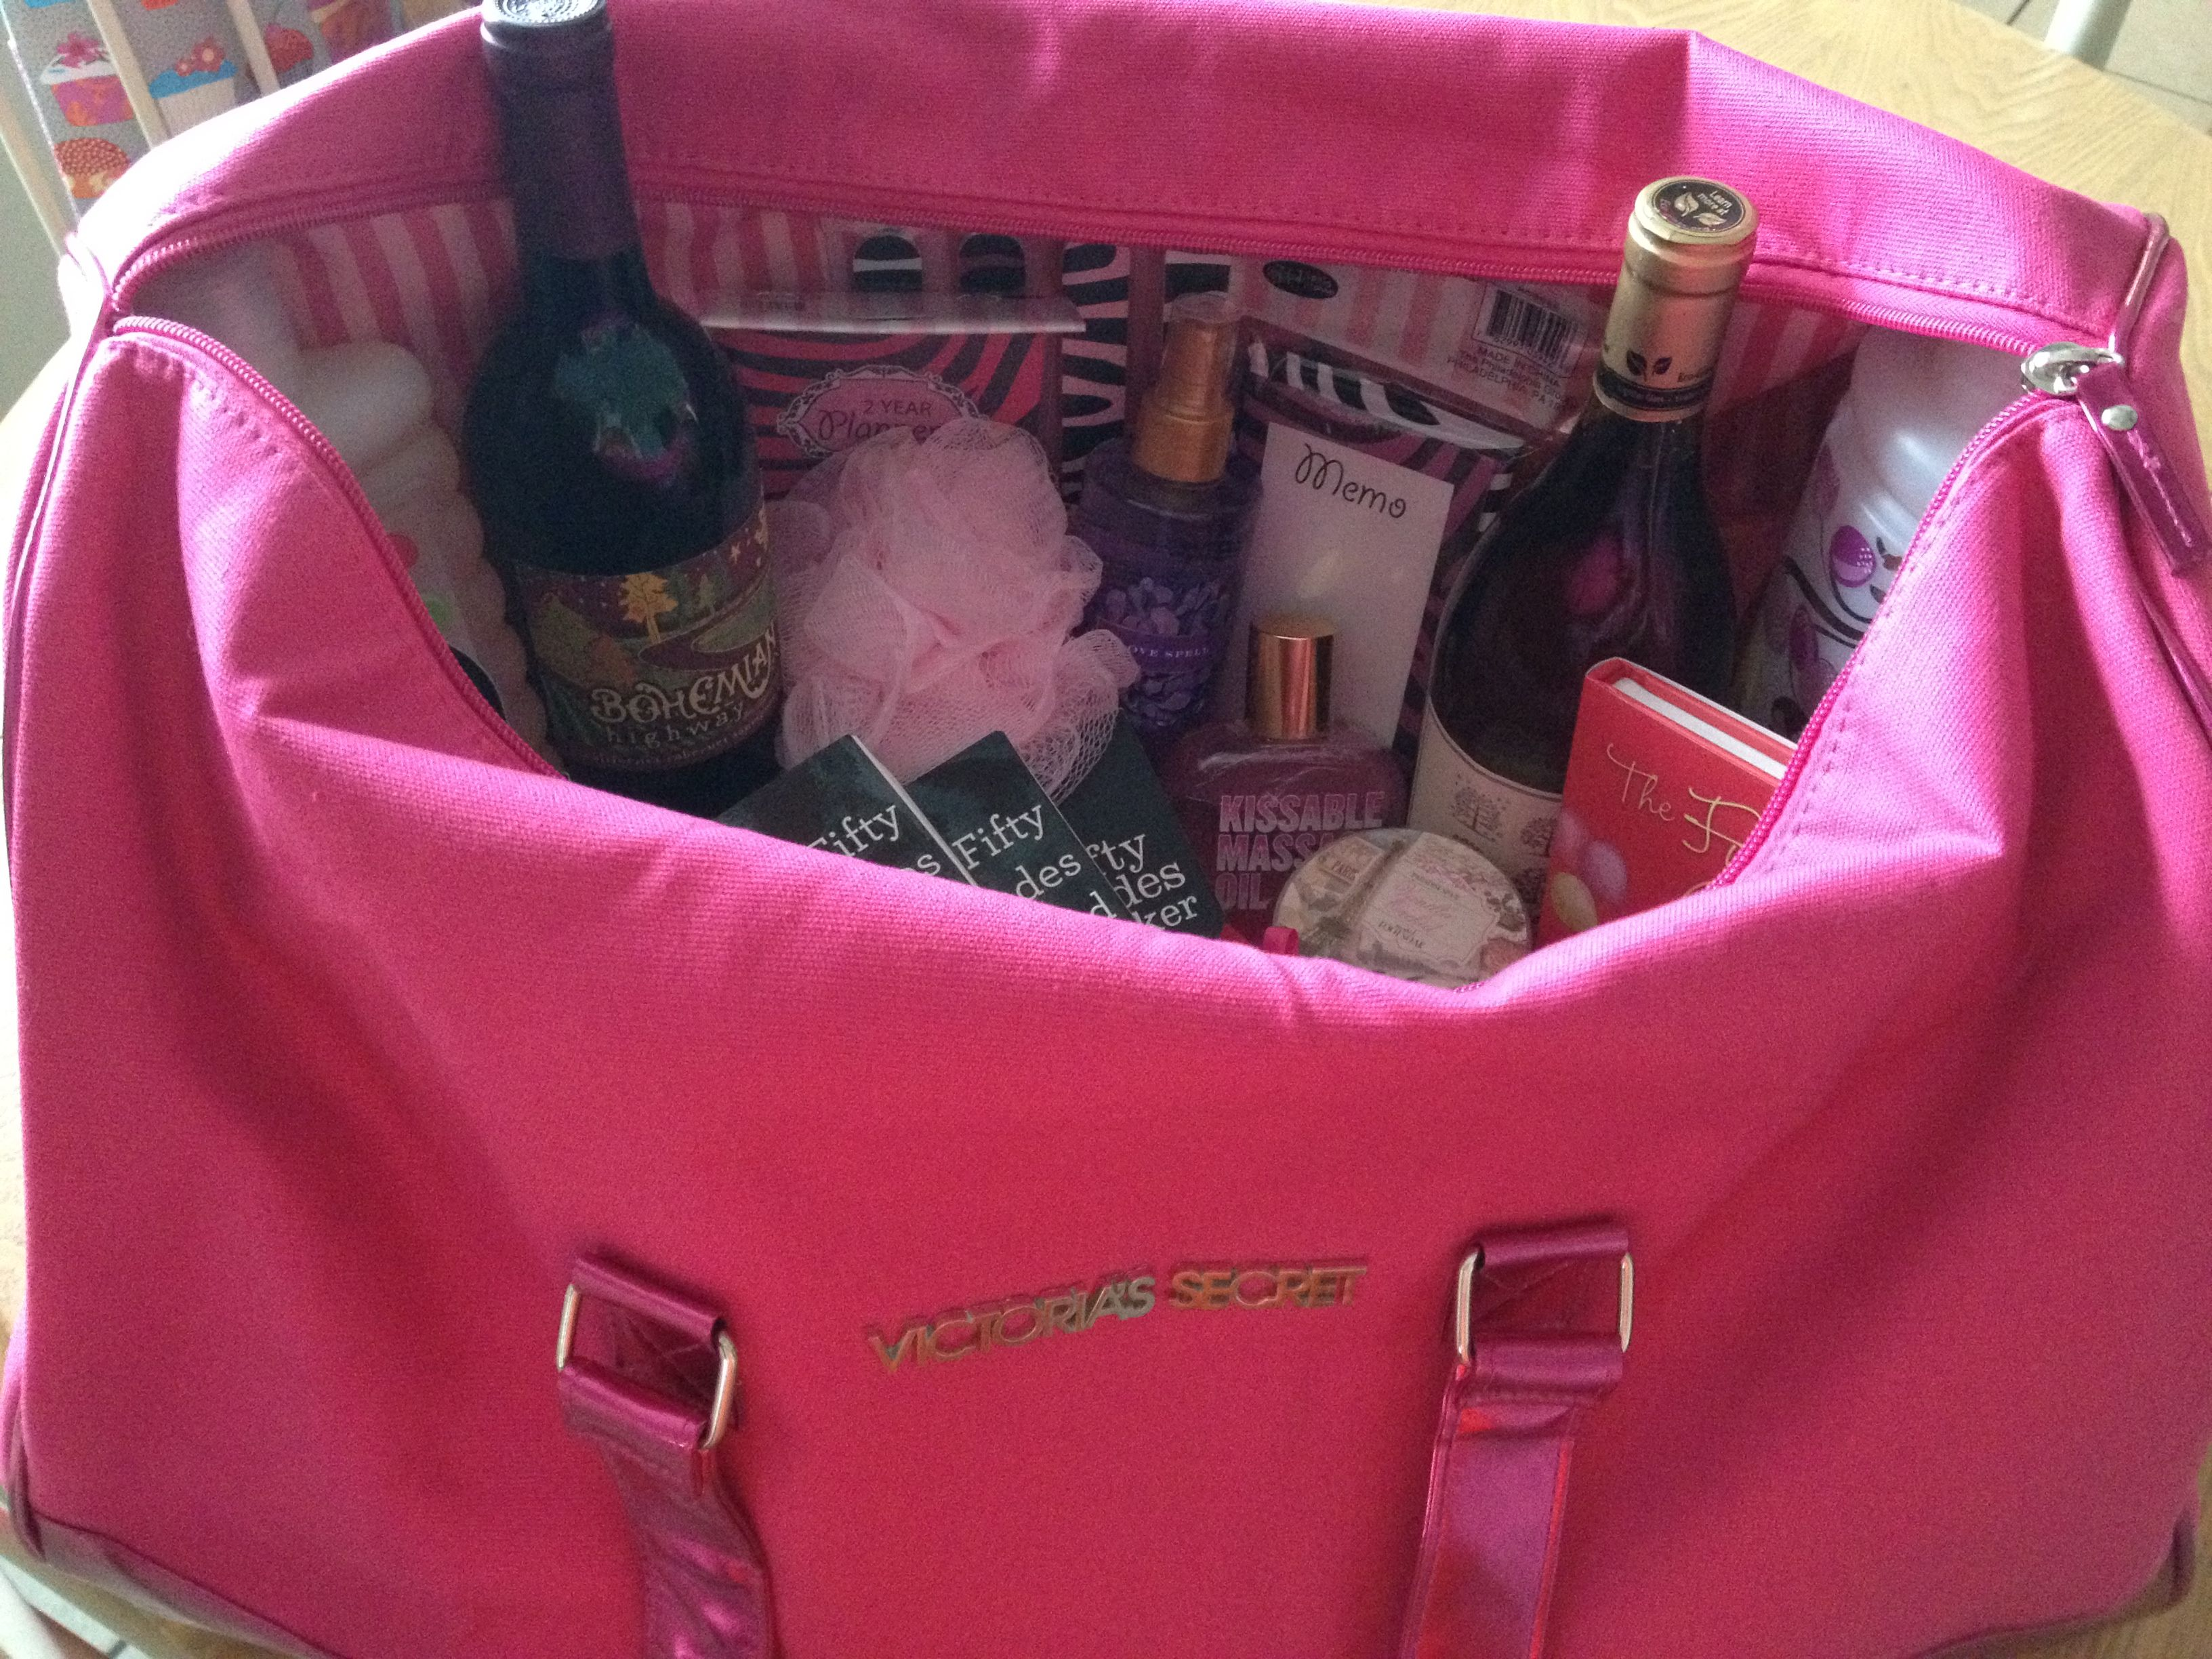 Now this is a fun basket! Mom's Weekend Getaway Bag - include a ...